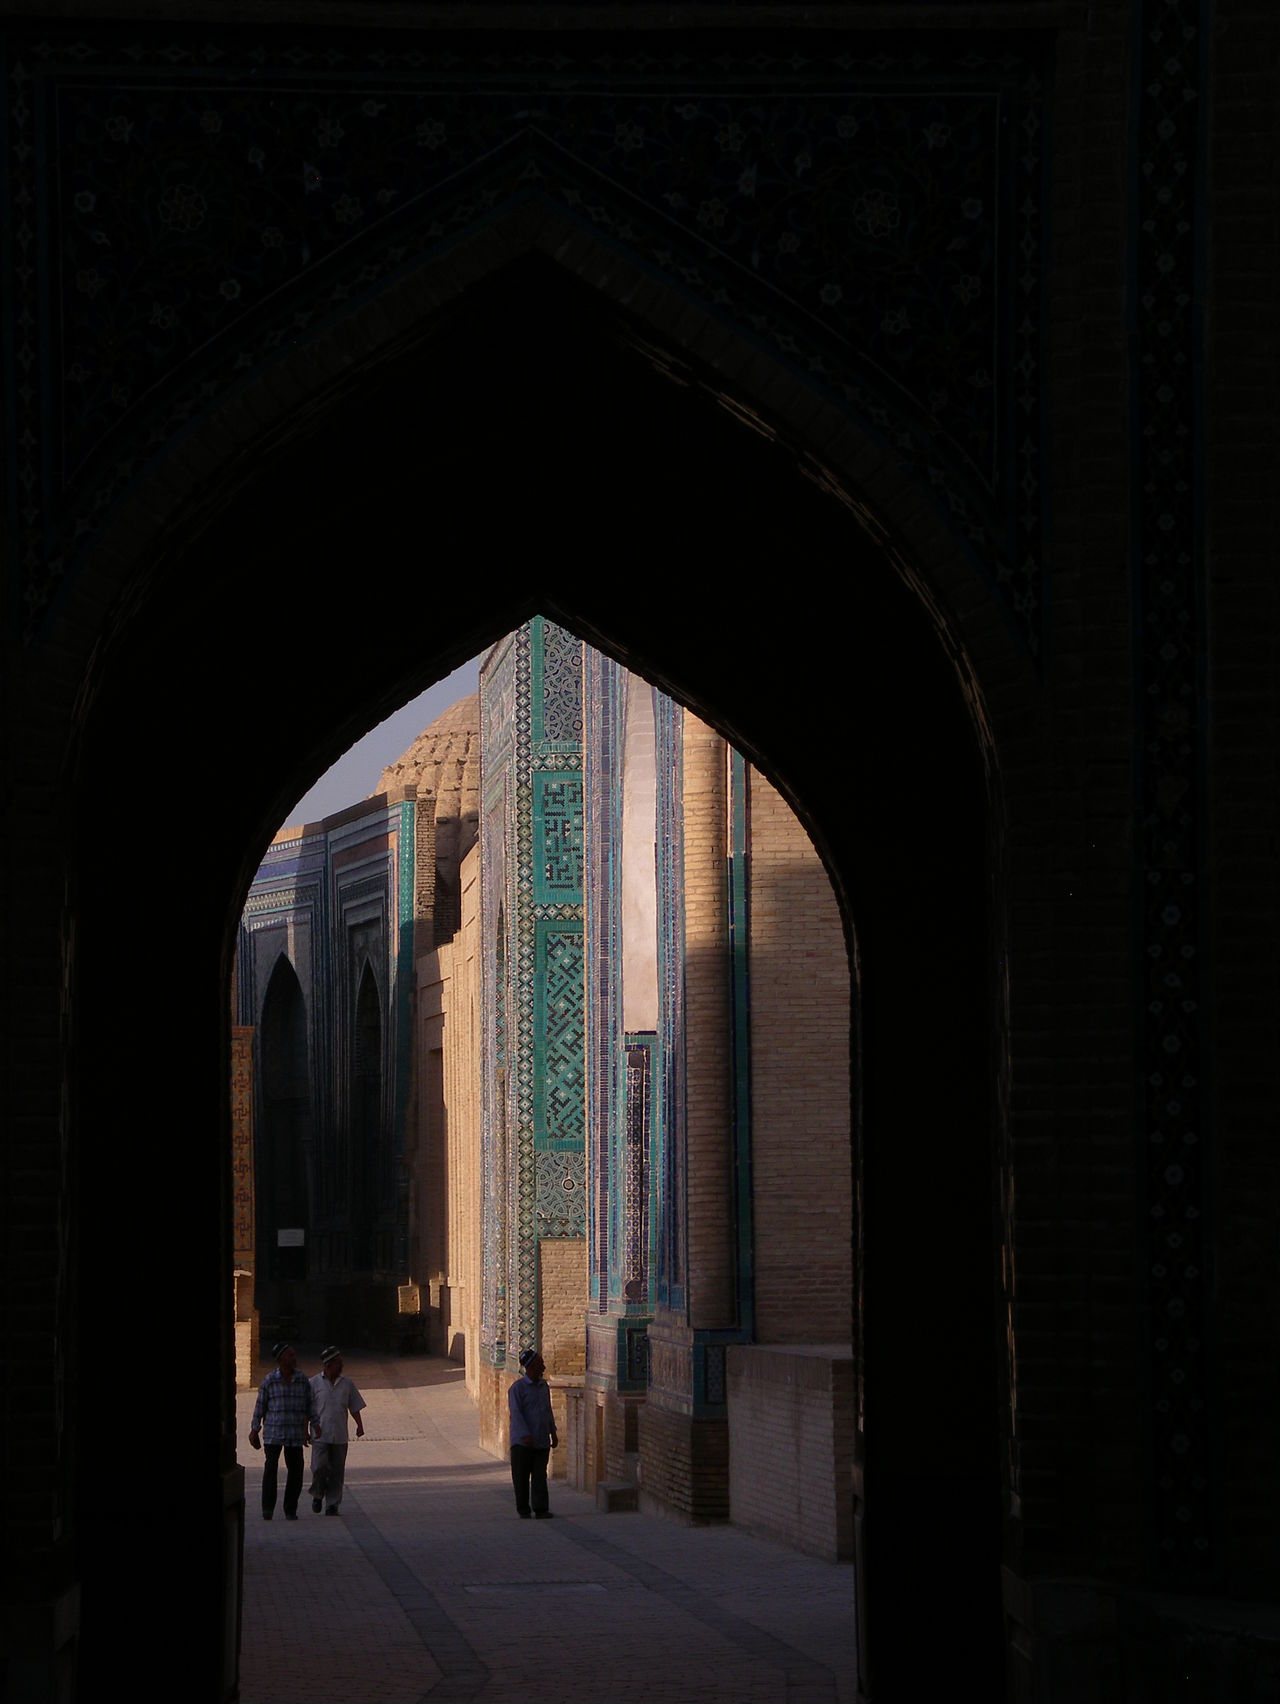 View through an archway in Samarkand, Uzbekistan on the Silk Road Arch Architecture Architecture Archway Built Structure Full Length Indoors  Real People Samarkand Samarquand Silk Road Silk Road Adventure Silk Route Tourism Uzbekistan Fresh On Eyeem